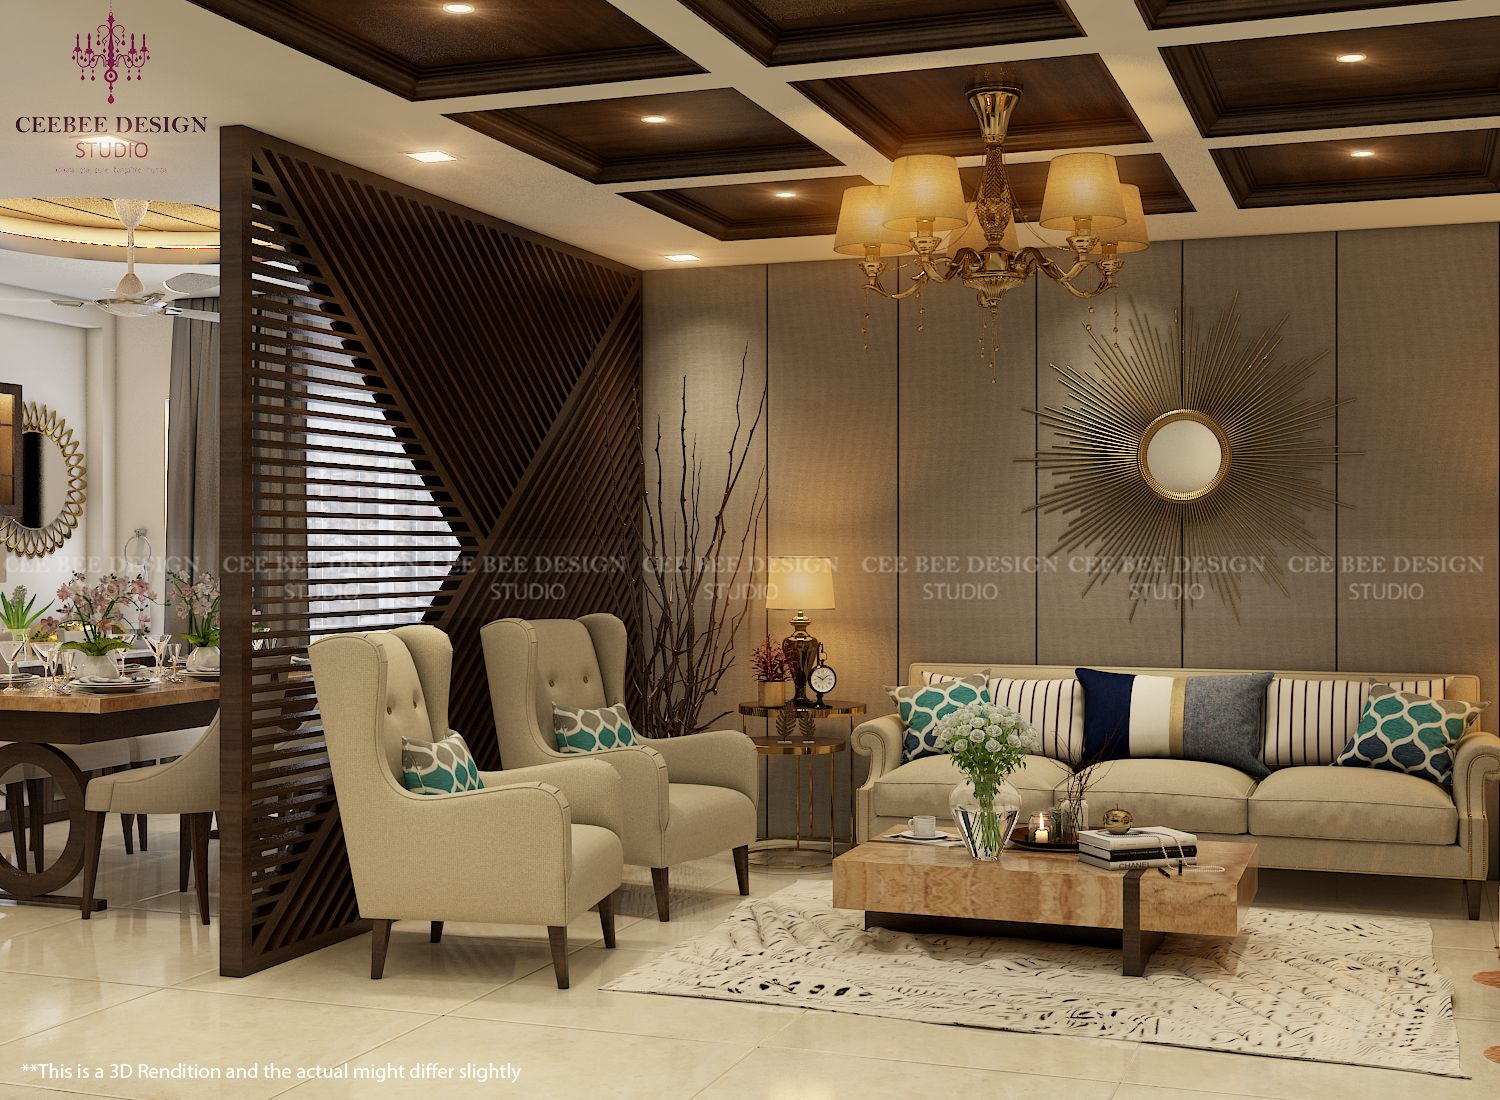 Best3d Interiordesigner Interiordesign Bangalore Kolkata 3d Design Mumbai Goa Pune Delhi We Recommend To All Interior Design Best Interior Interior